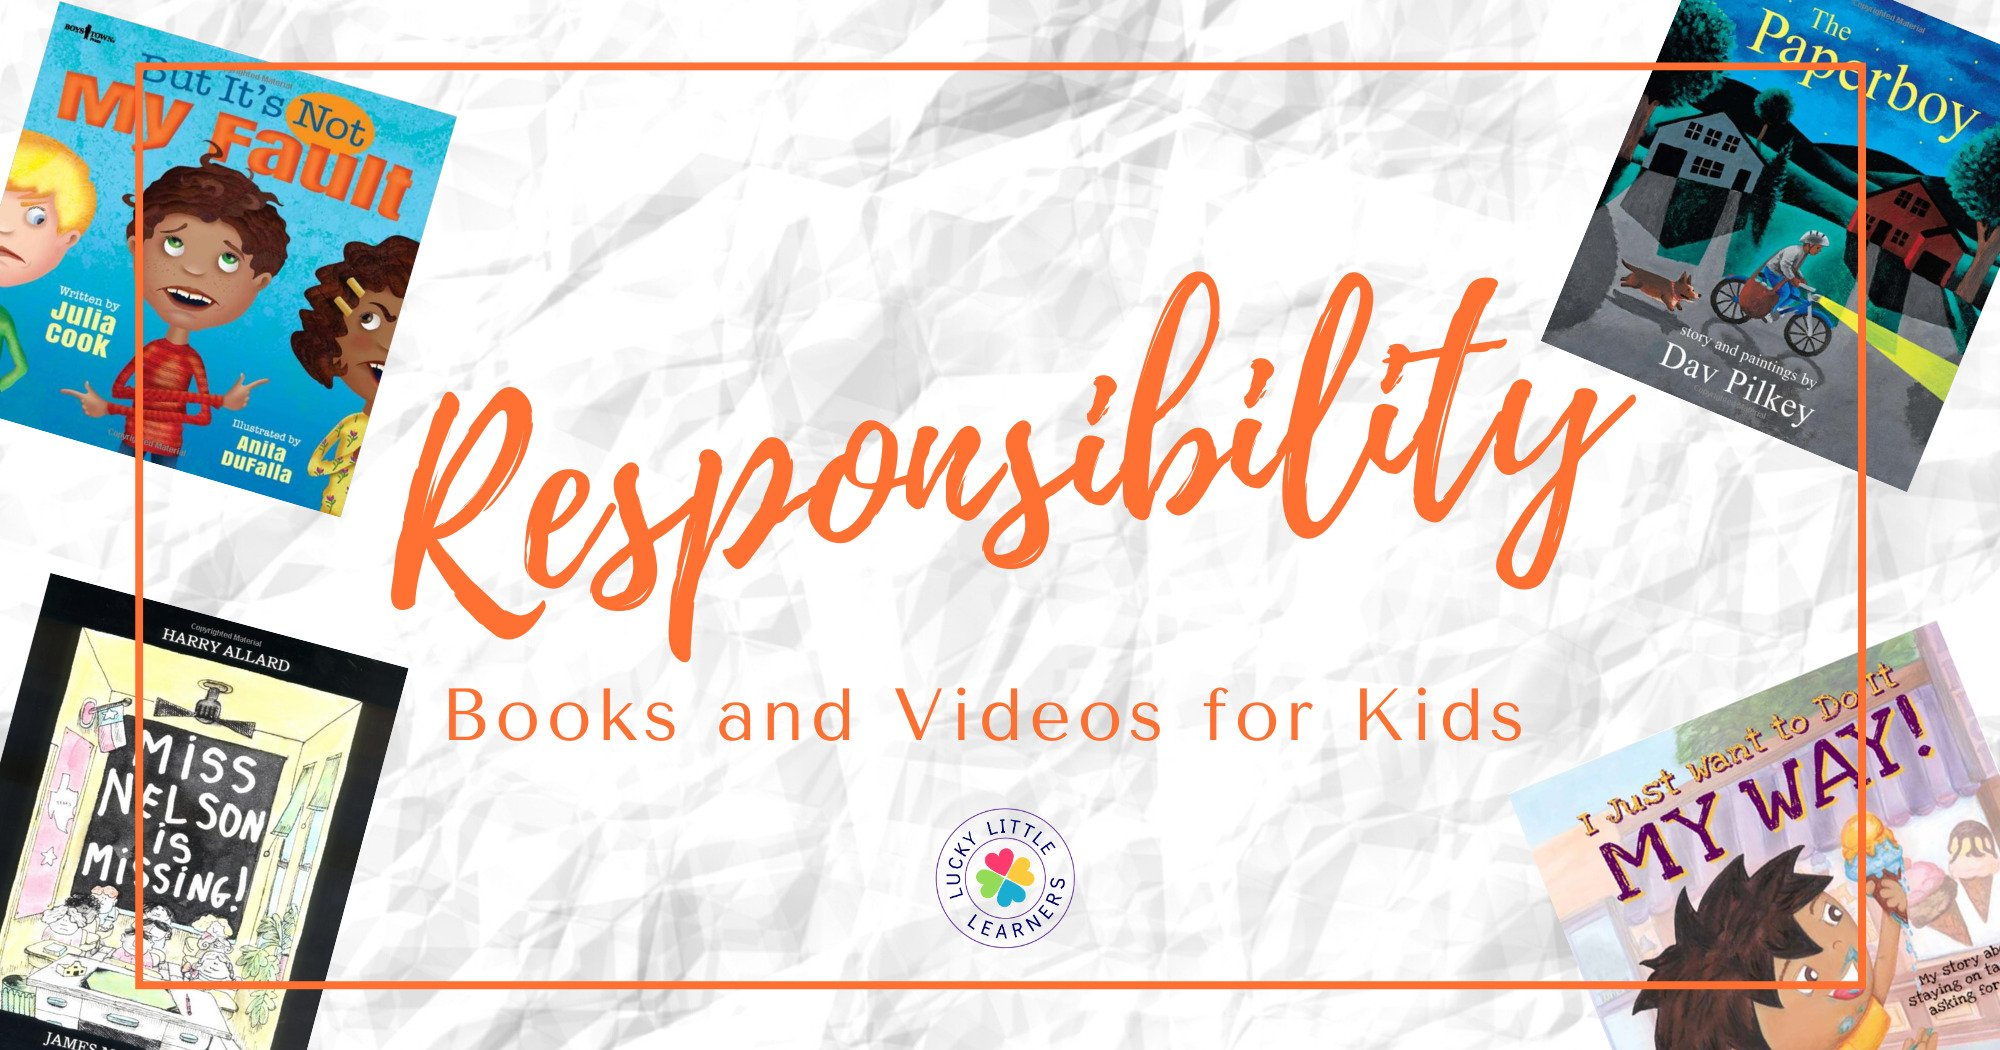 Must-Have Children's Books and Videos About Responsibility